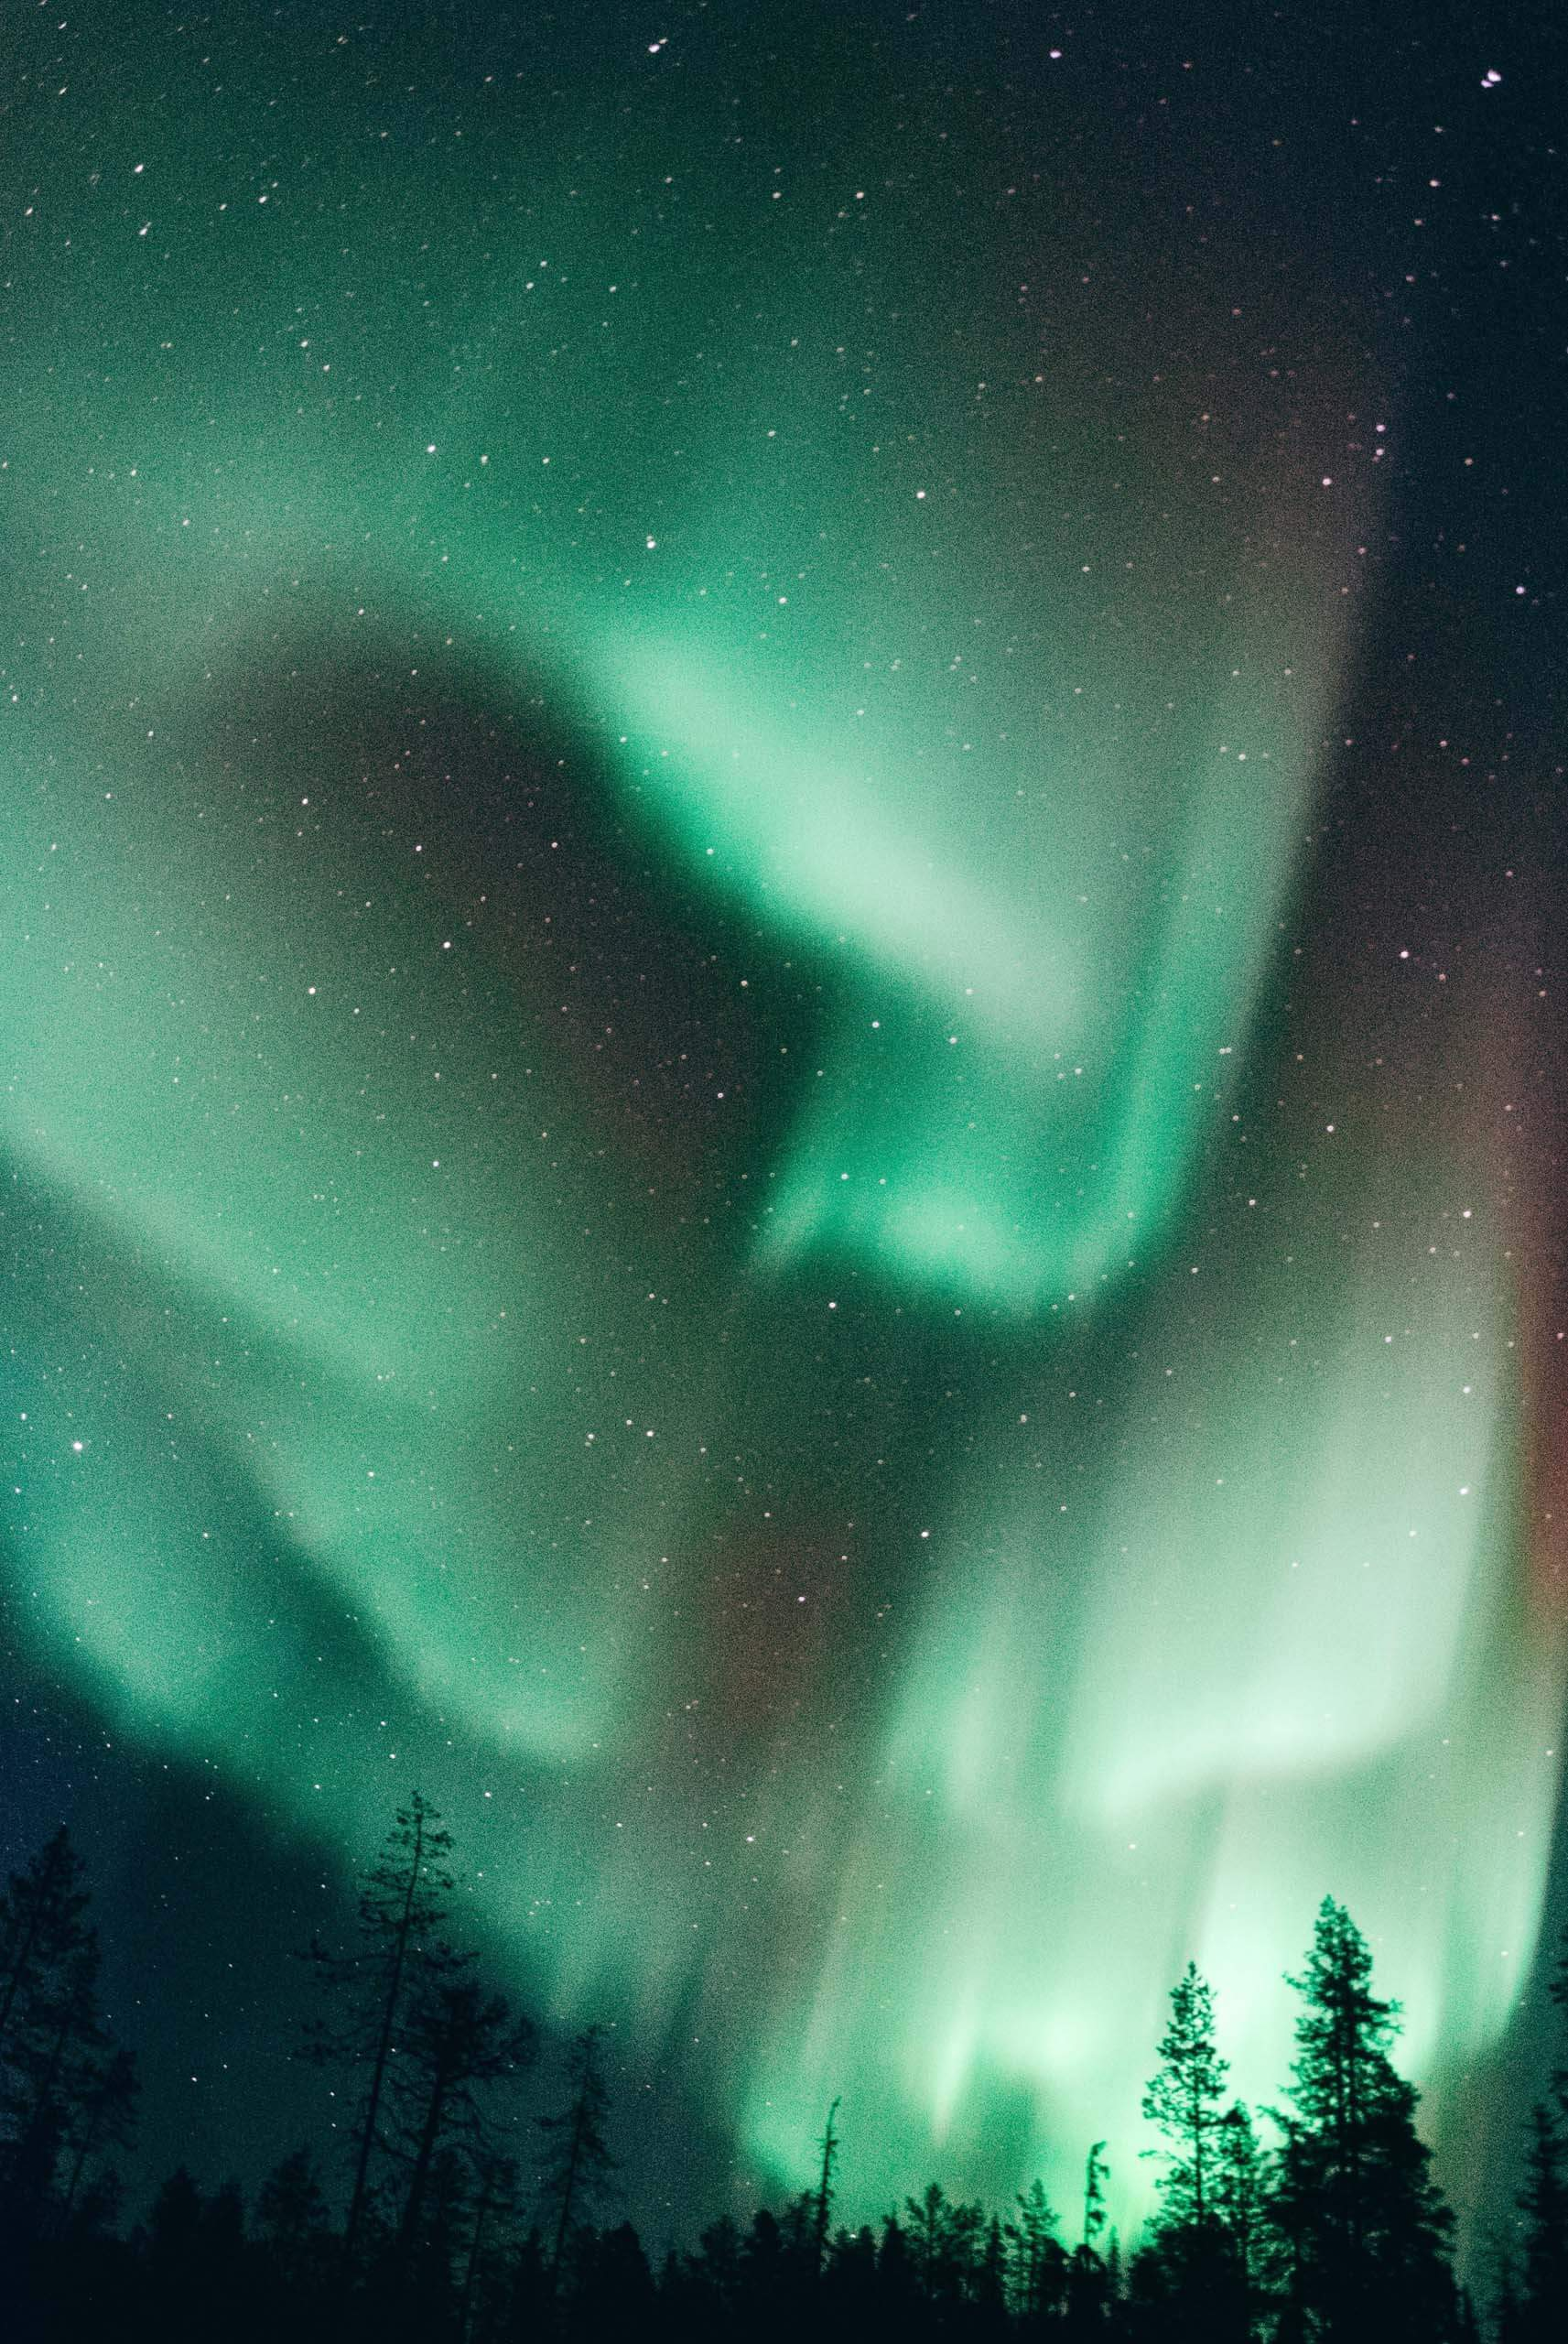 Northern Lights display. Photo by Lucas Marcomini on Unsplash